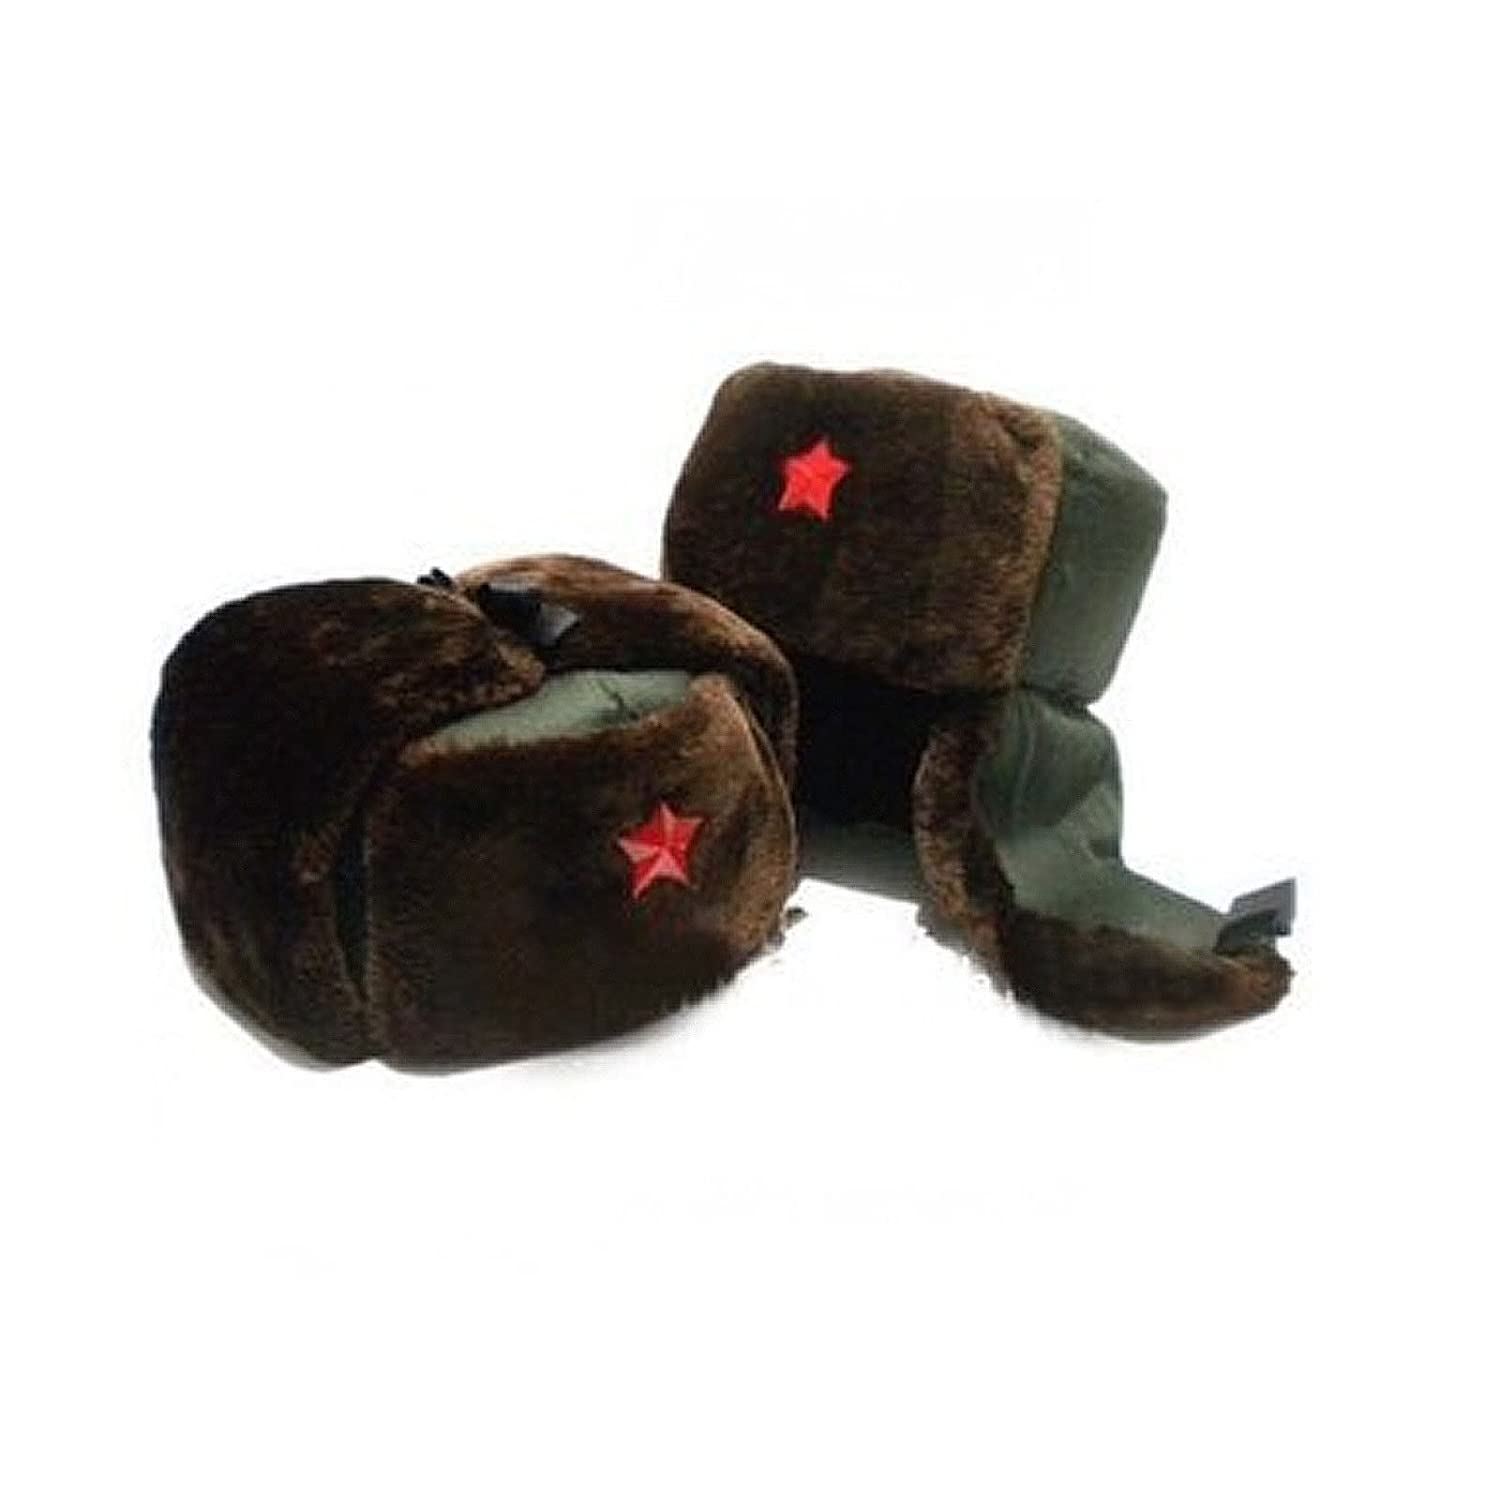 Chinese Russian Army Trooper Winter Hat Ushanka Green Warm Cap Red Star  Badge at Amazon Men s Clothing store  f482f7412ac